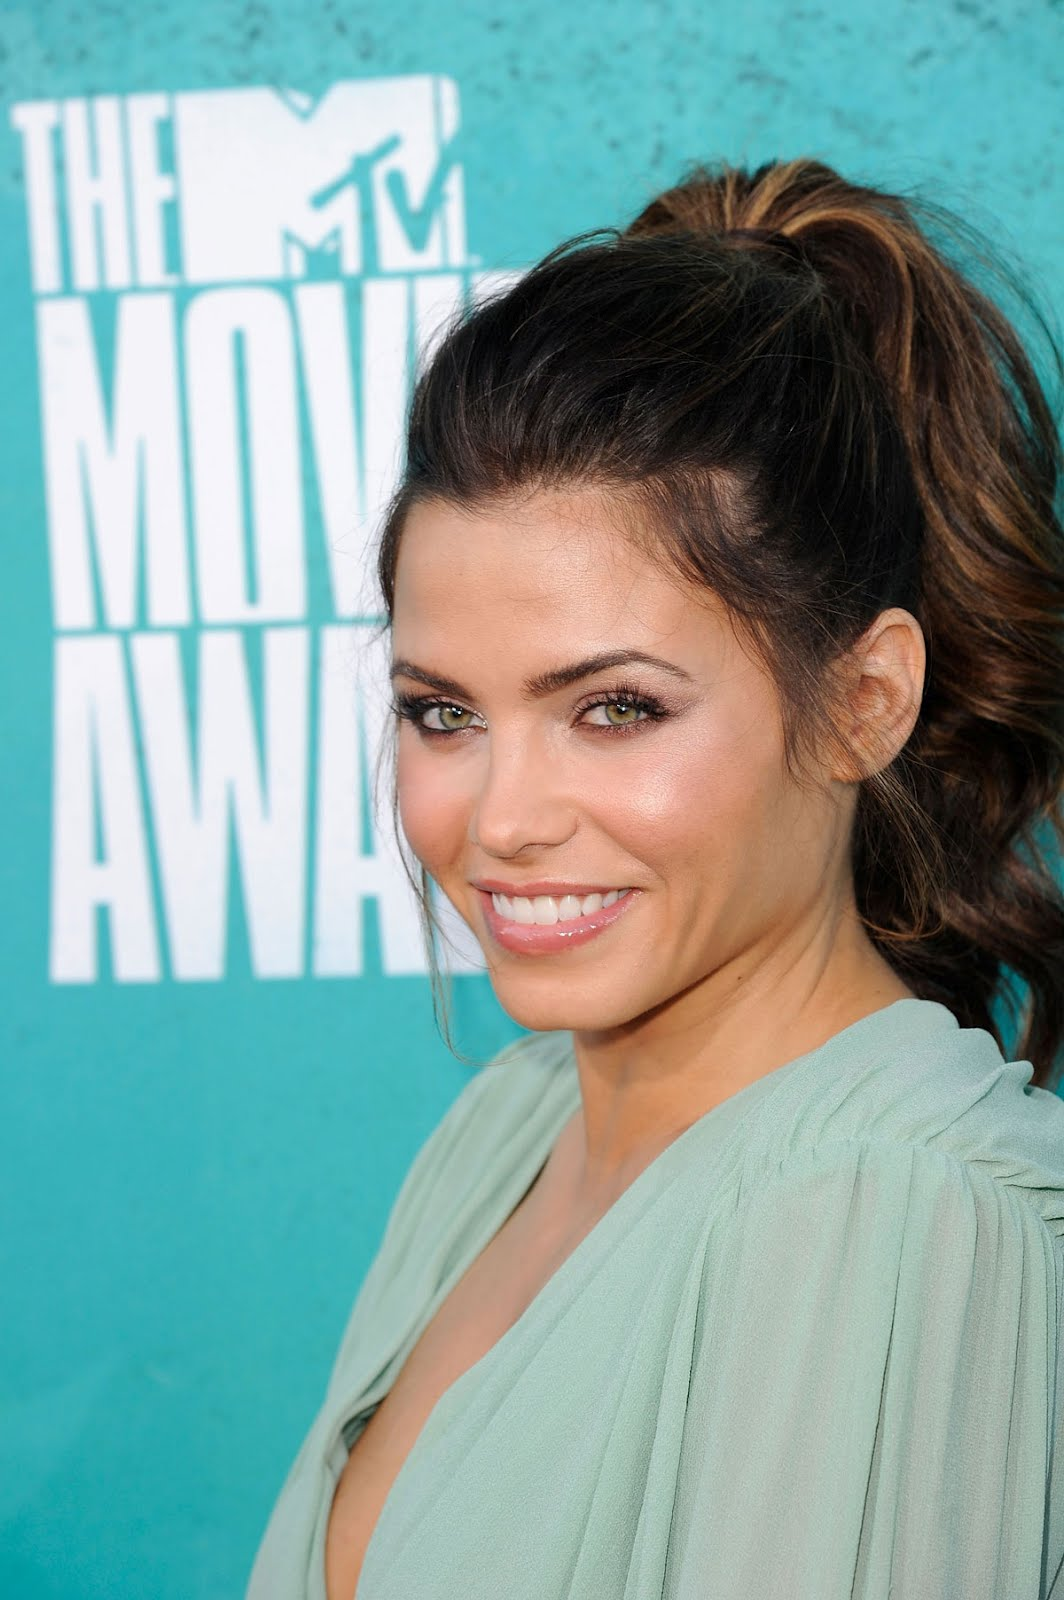 http://1.bp.blogspot.com/-zYGu37EBdjA/T8-Qb90kVTI/AAAAAAAAGw0/k67Nn78p3BU/s1600/JENNA-DEWAN-at-MTV-Movie-Awards-2012-at-Universal-Studios-in-Los-Angeles-5.jpg